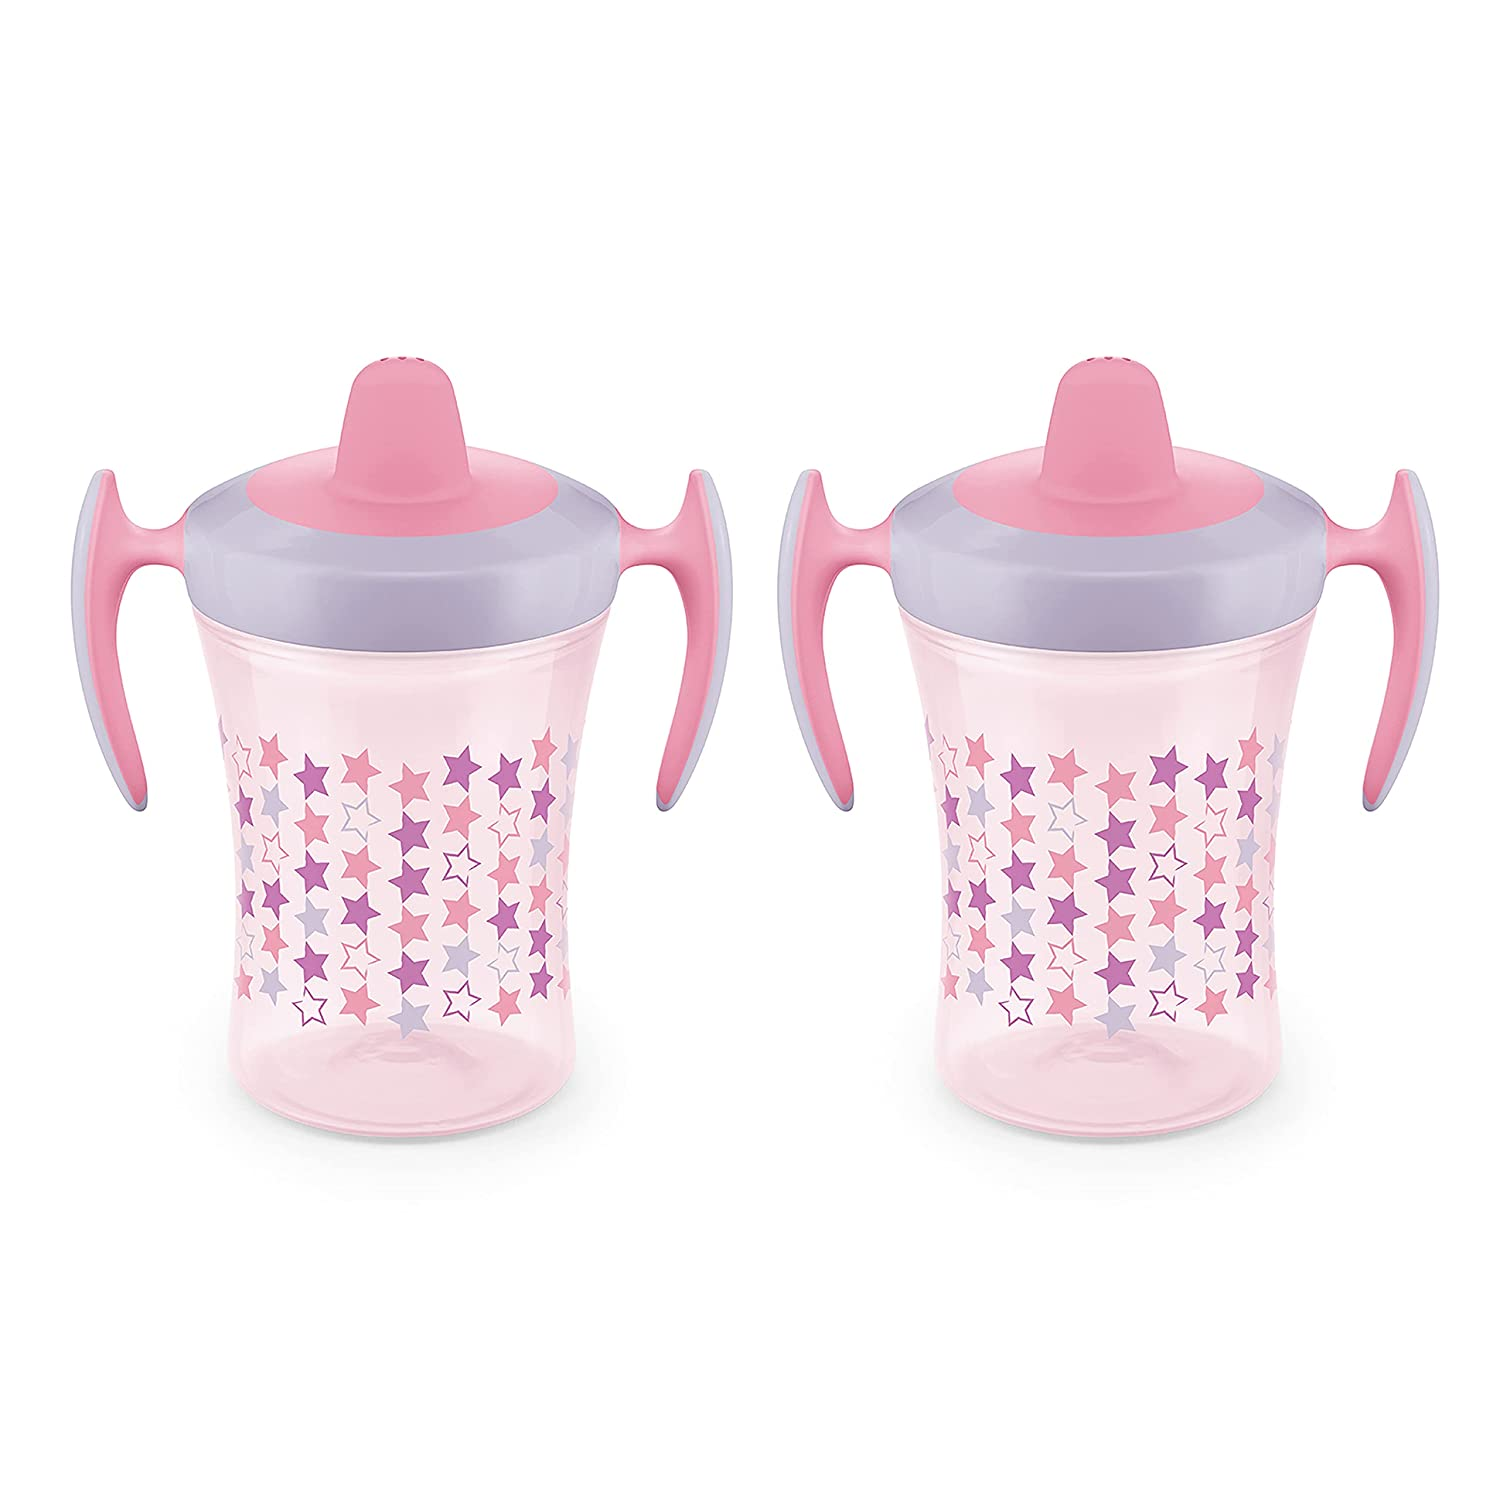 NUK Evolution Soft Spout Directly managed store Learner oz 8 Cup 2-Pack 25% OFF